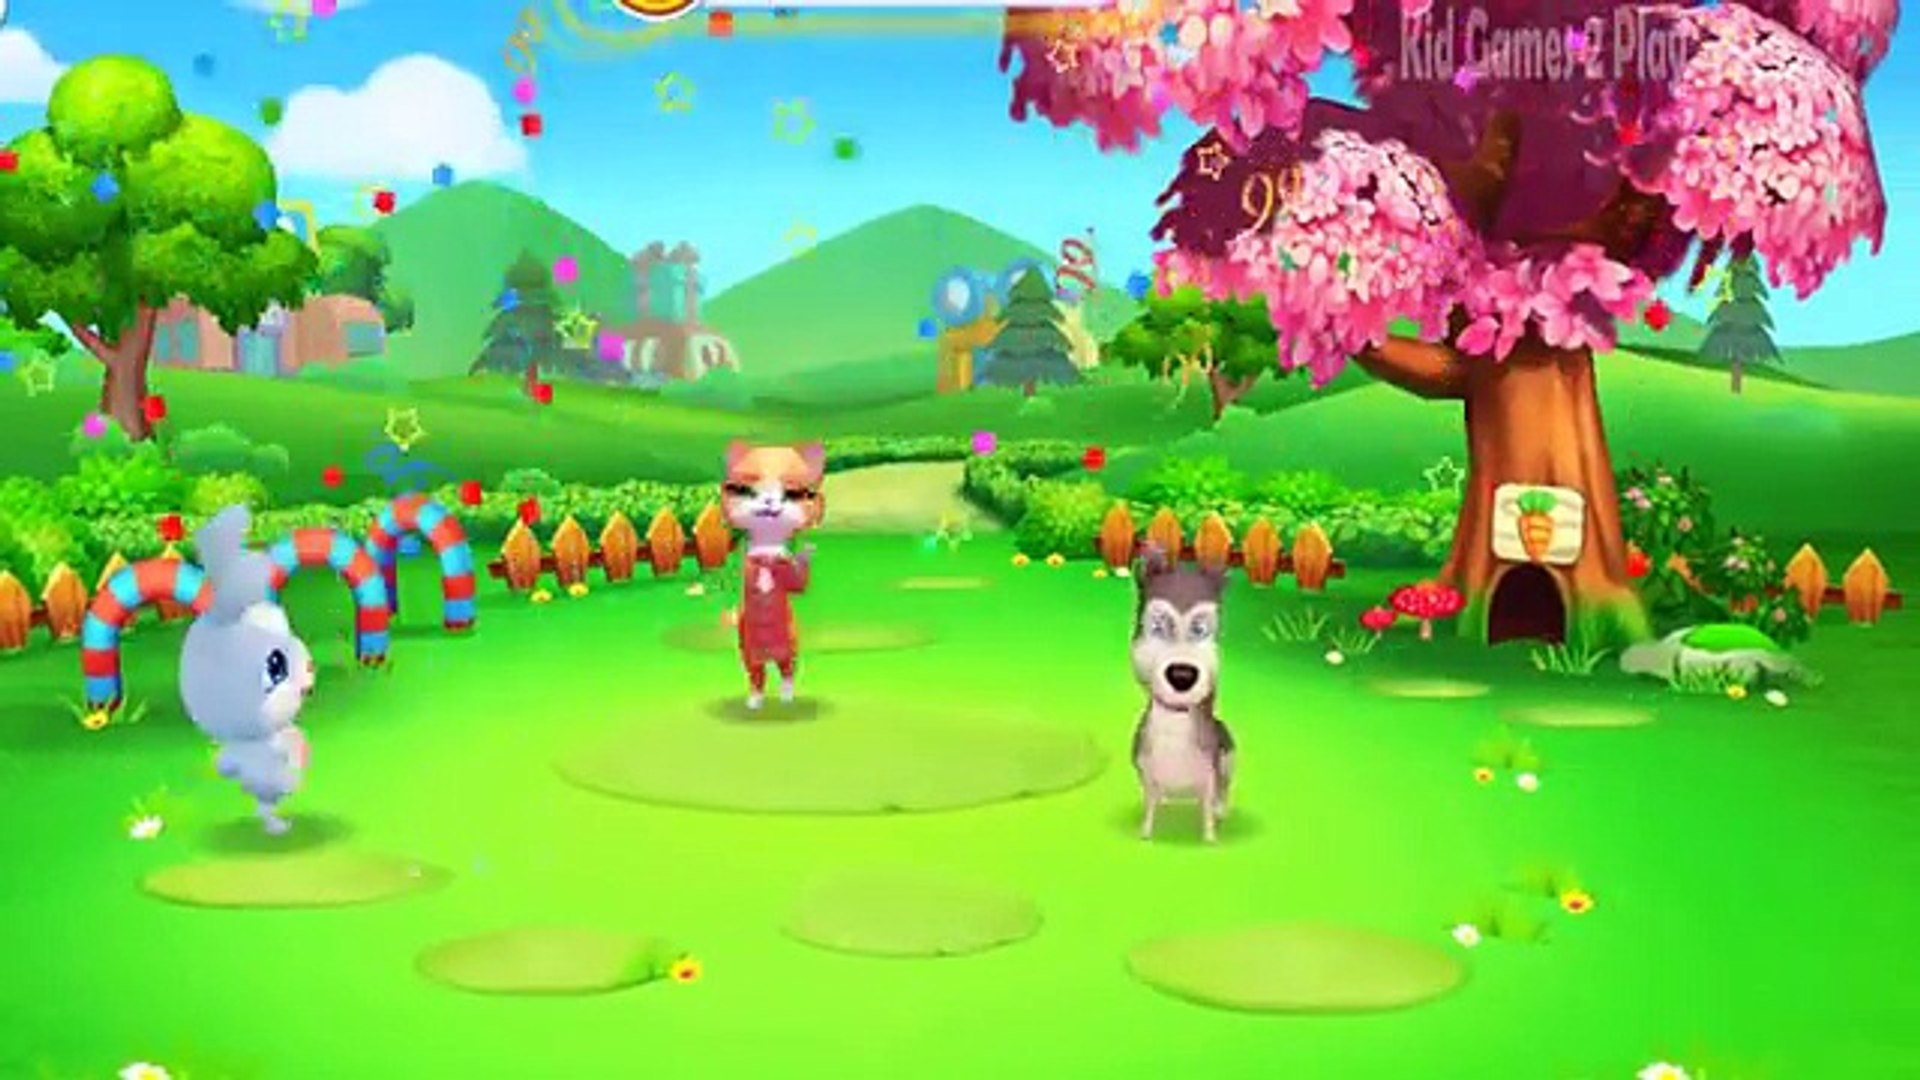 Fun Pet Care Colors Kids Games - Bad Baby Play & Learn Pets Doctor Care Game for Kids Toddlers B